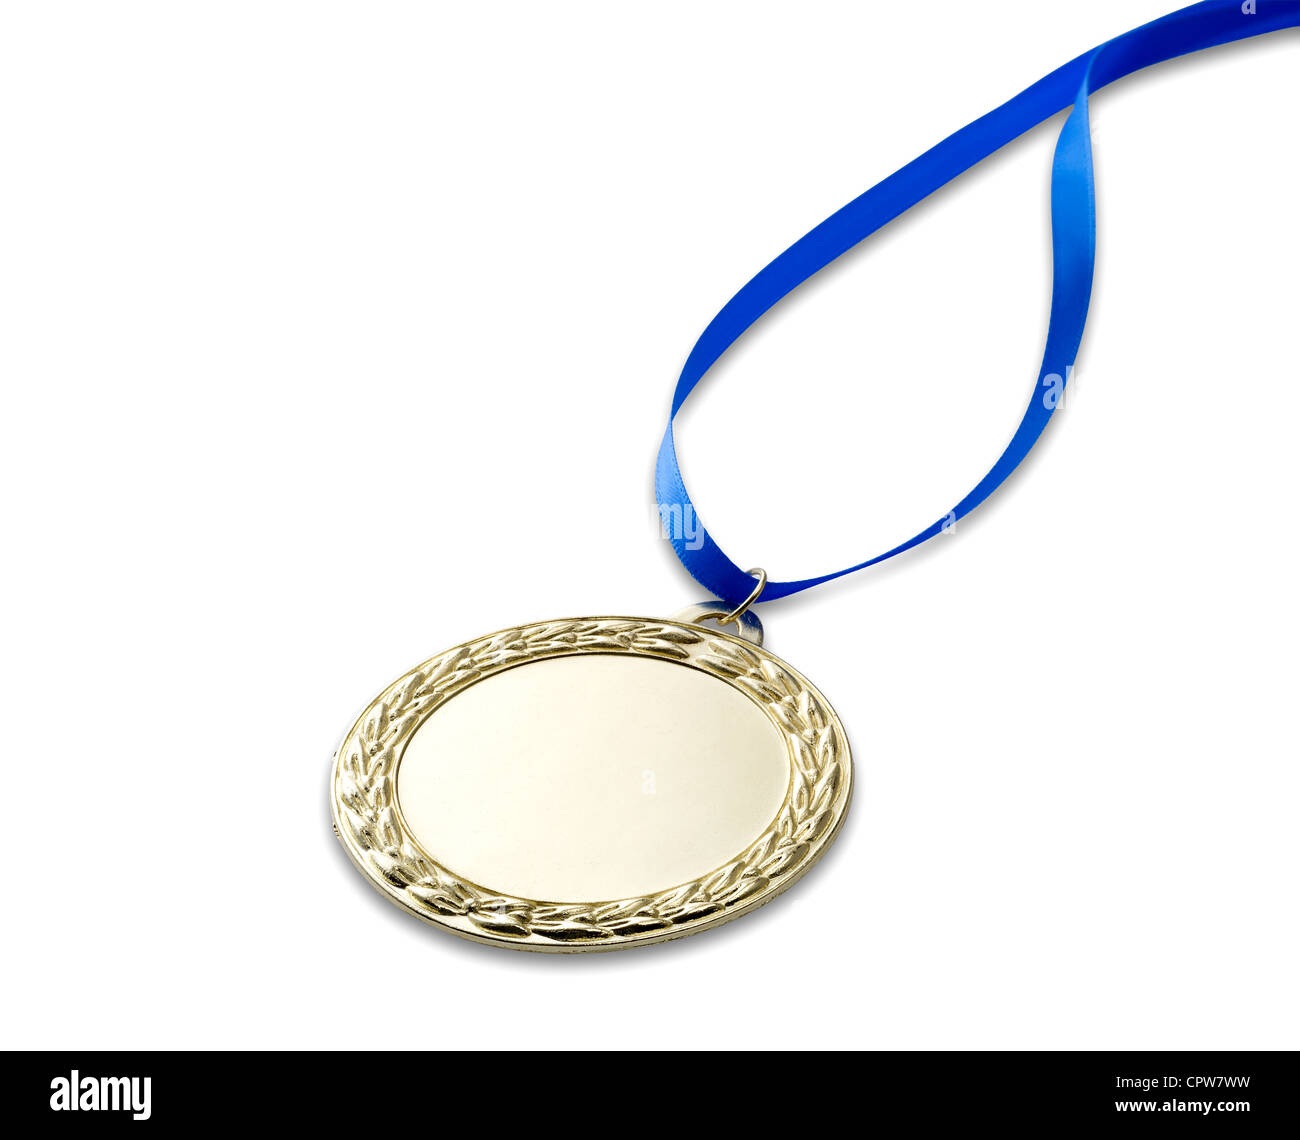 A gold olympics medal with clipping path isolated on white with blue ribbon - Stock Image